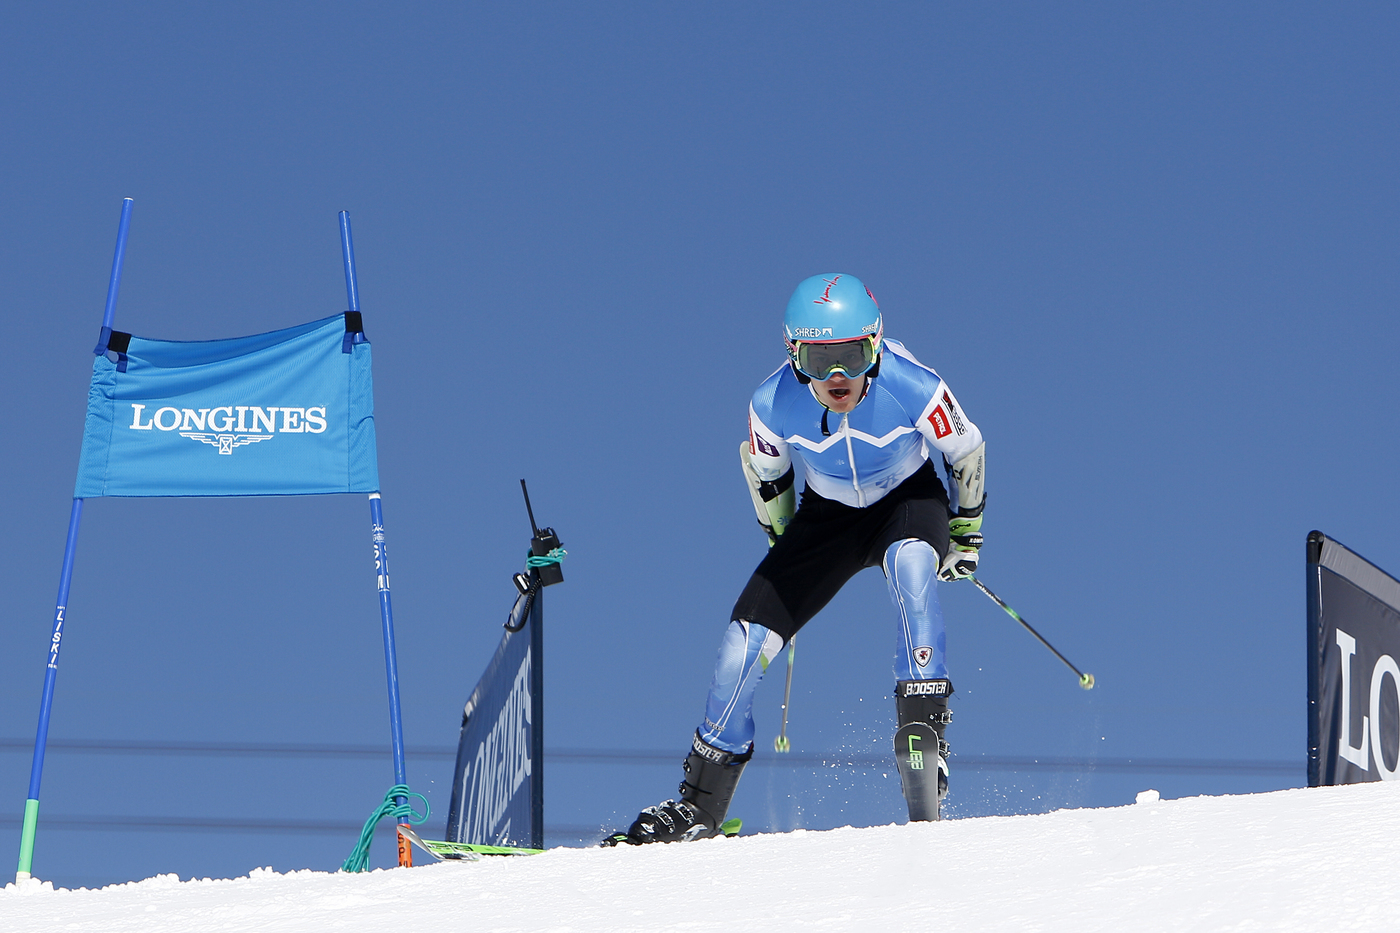 Longines Alpine Skiing Event: A new venue for the third edition of the Longines Future Ski Champions 13